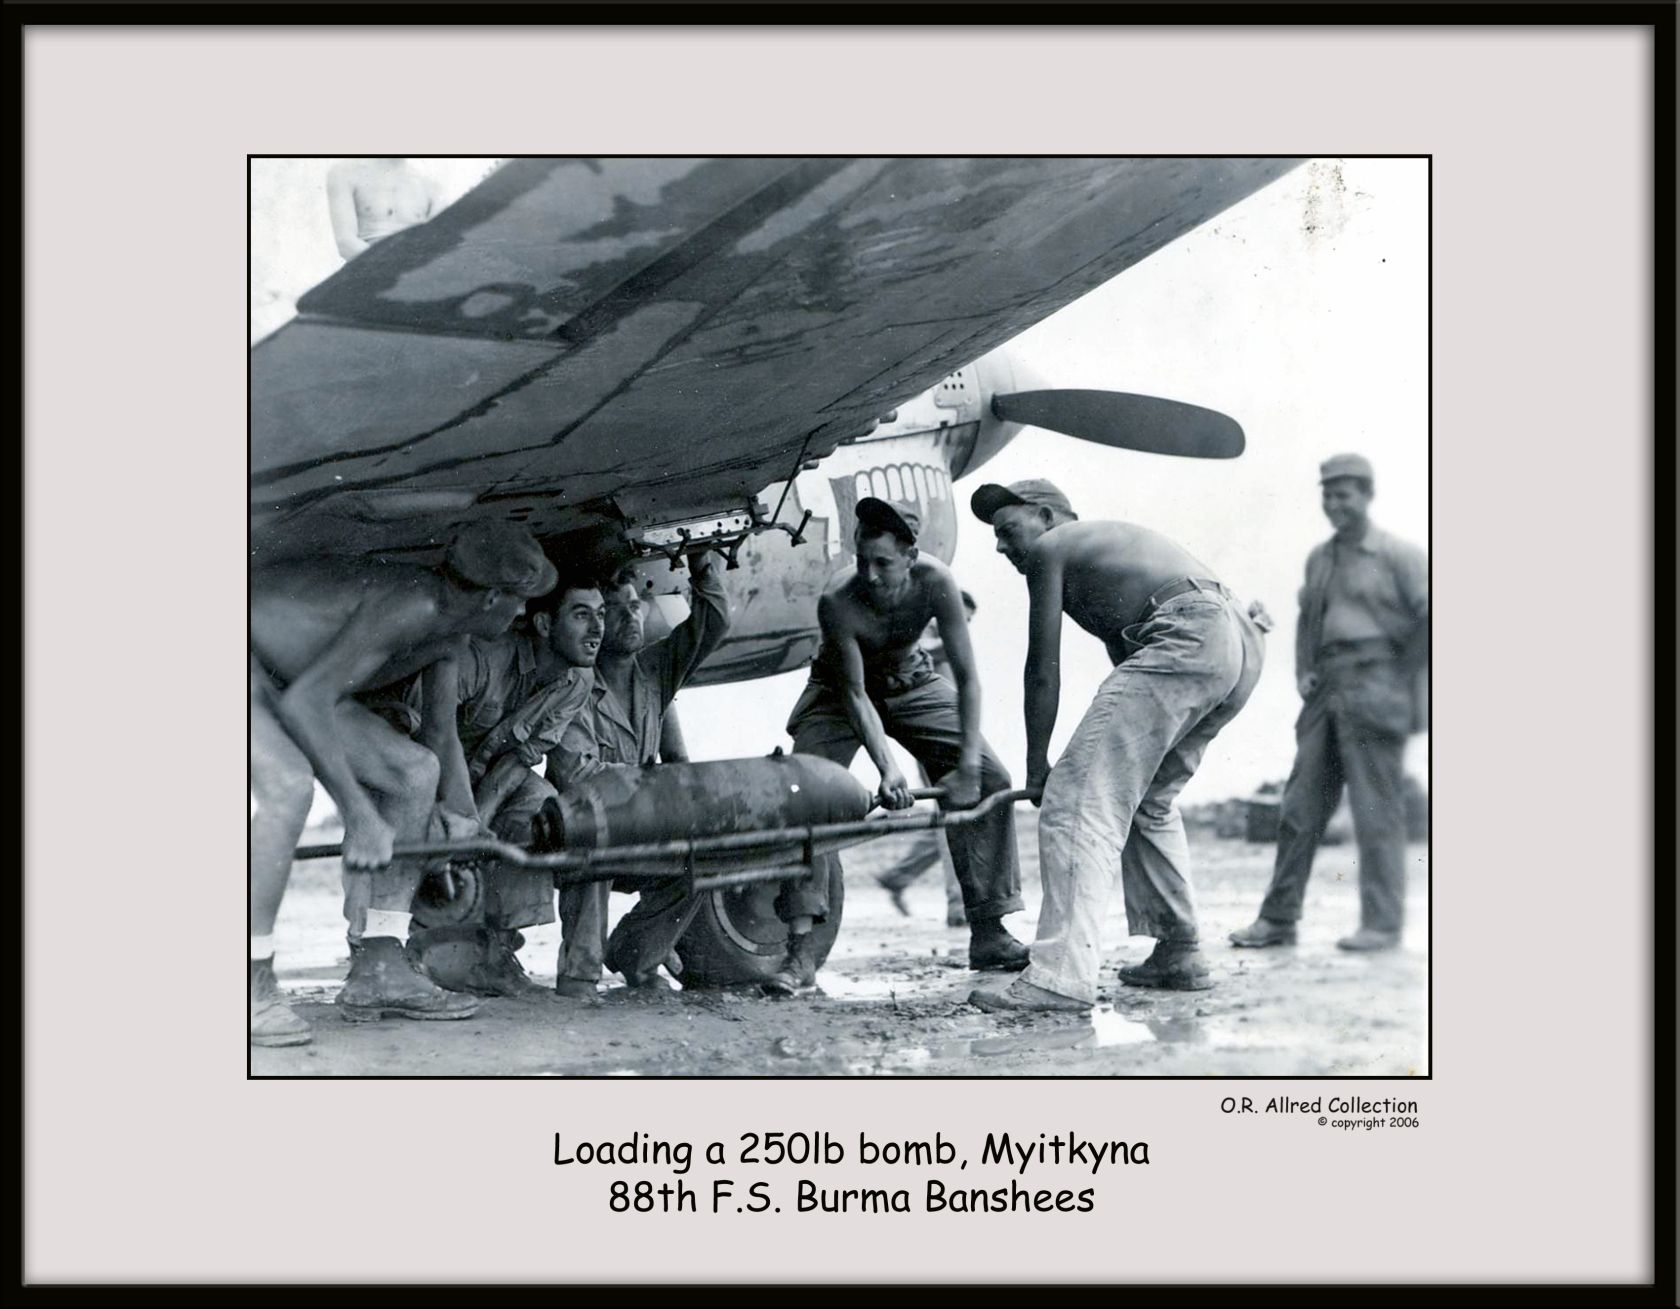 Another-Day-in-Burma